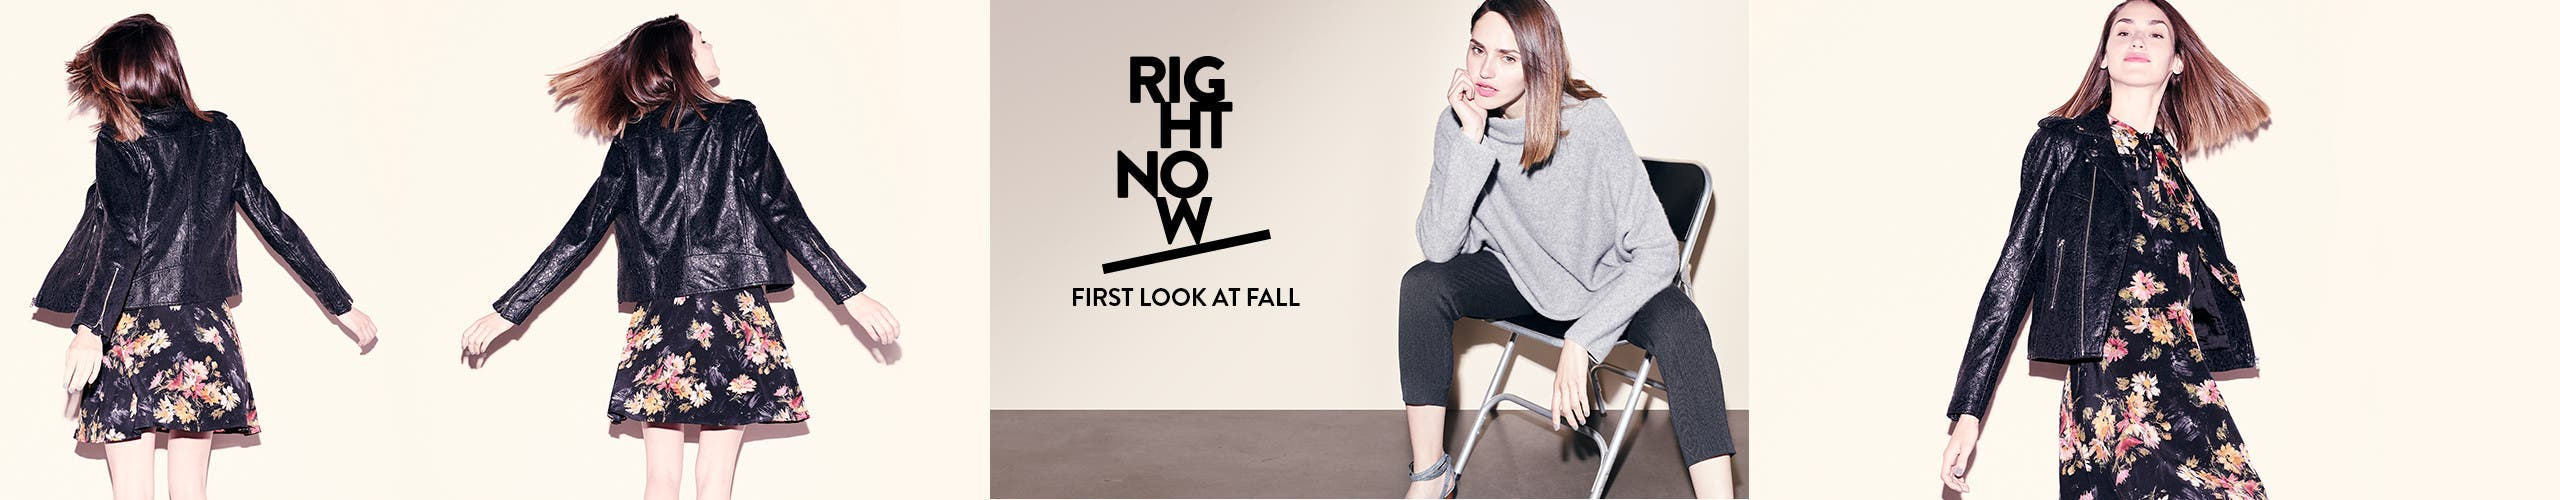 Right now: first look at contemporary fall clothing.